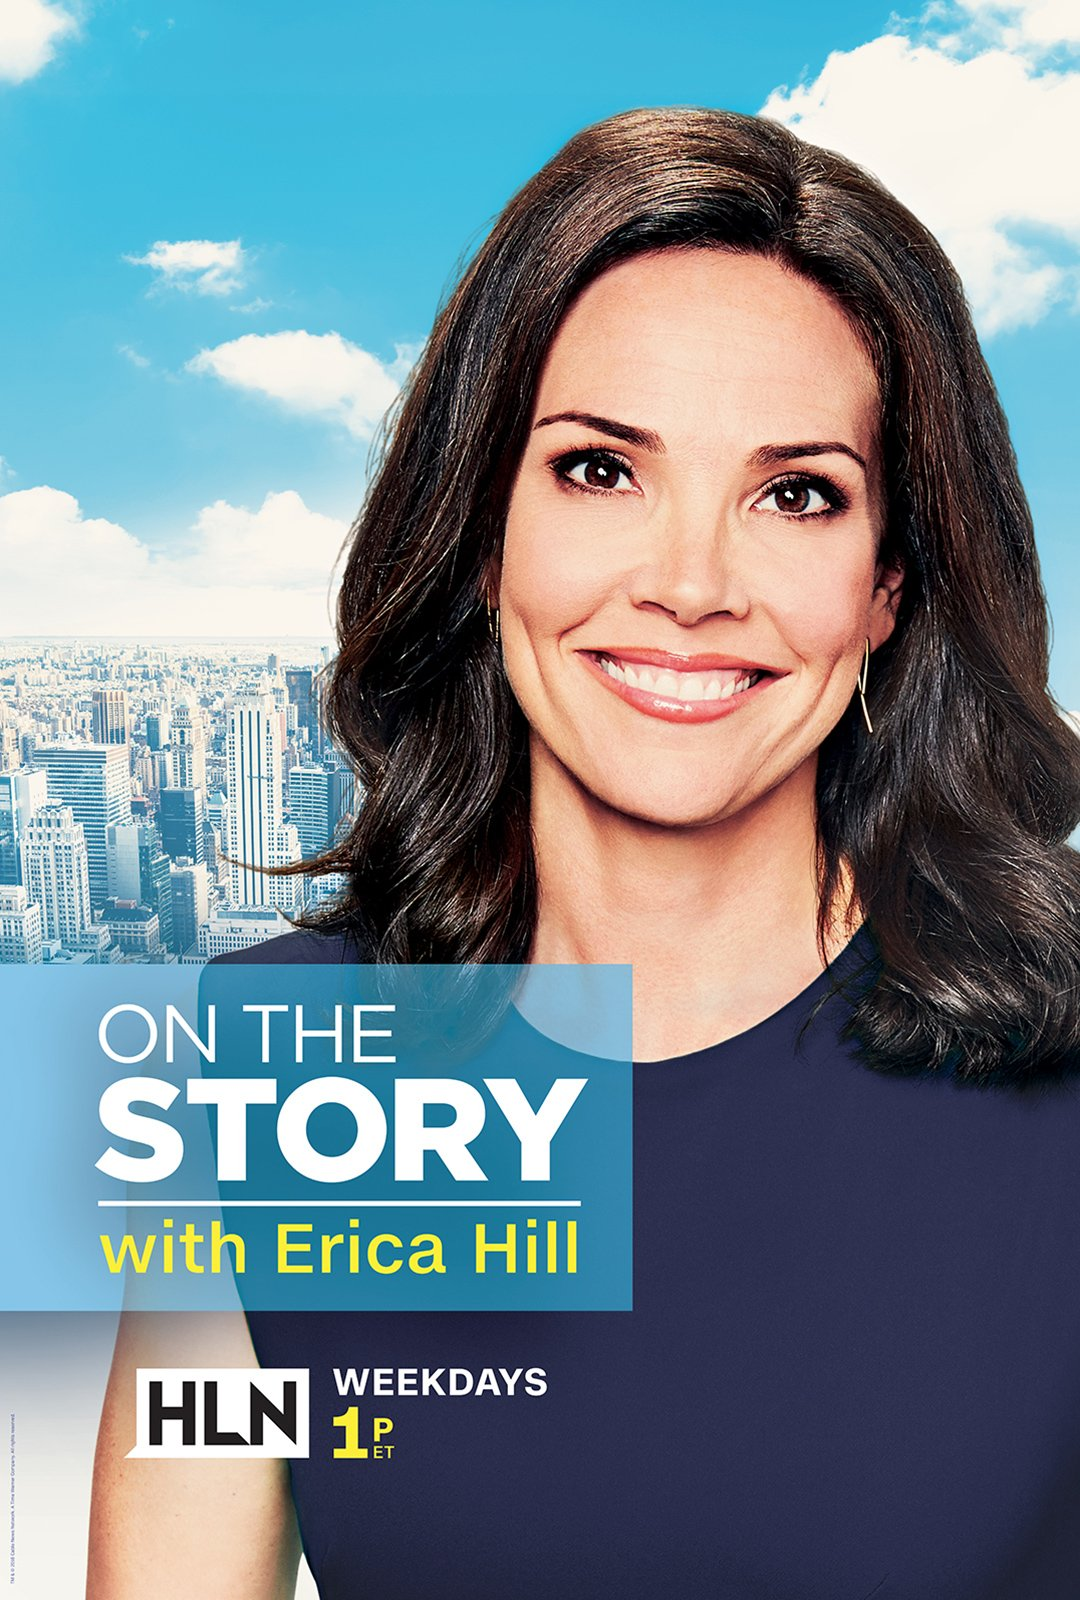 HLN_Erical_Hill_poster